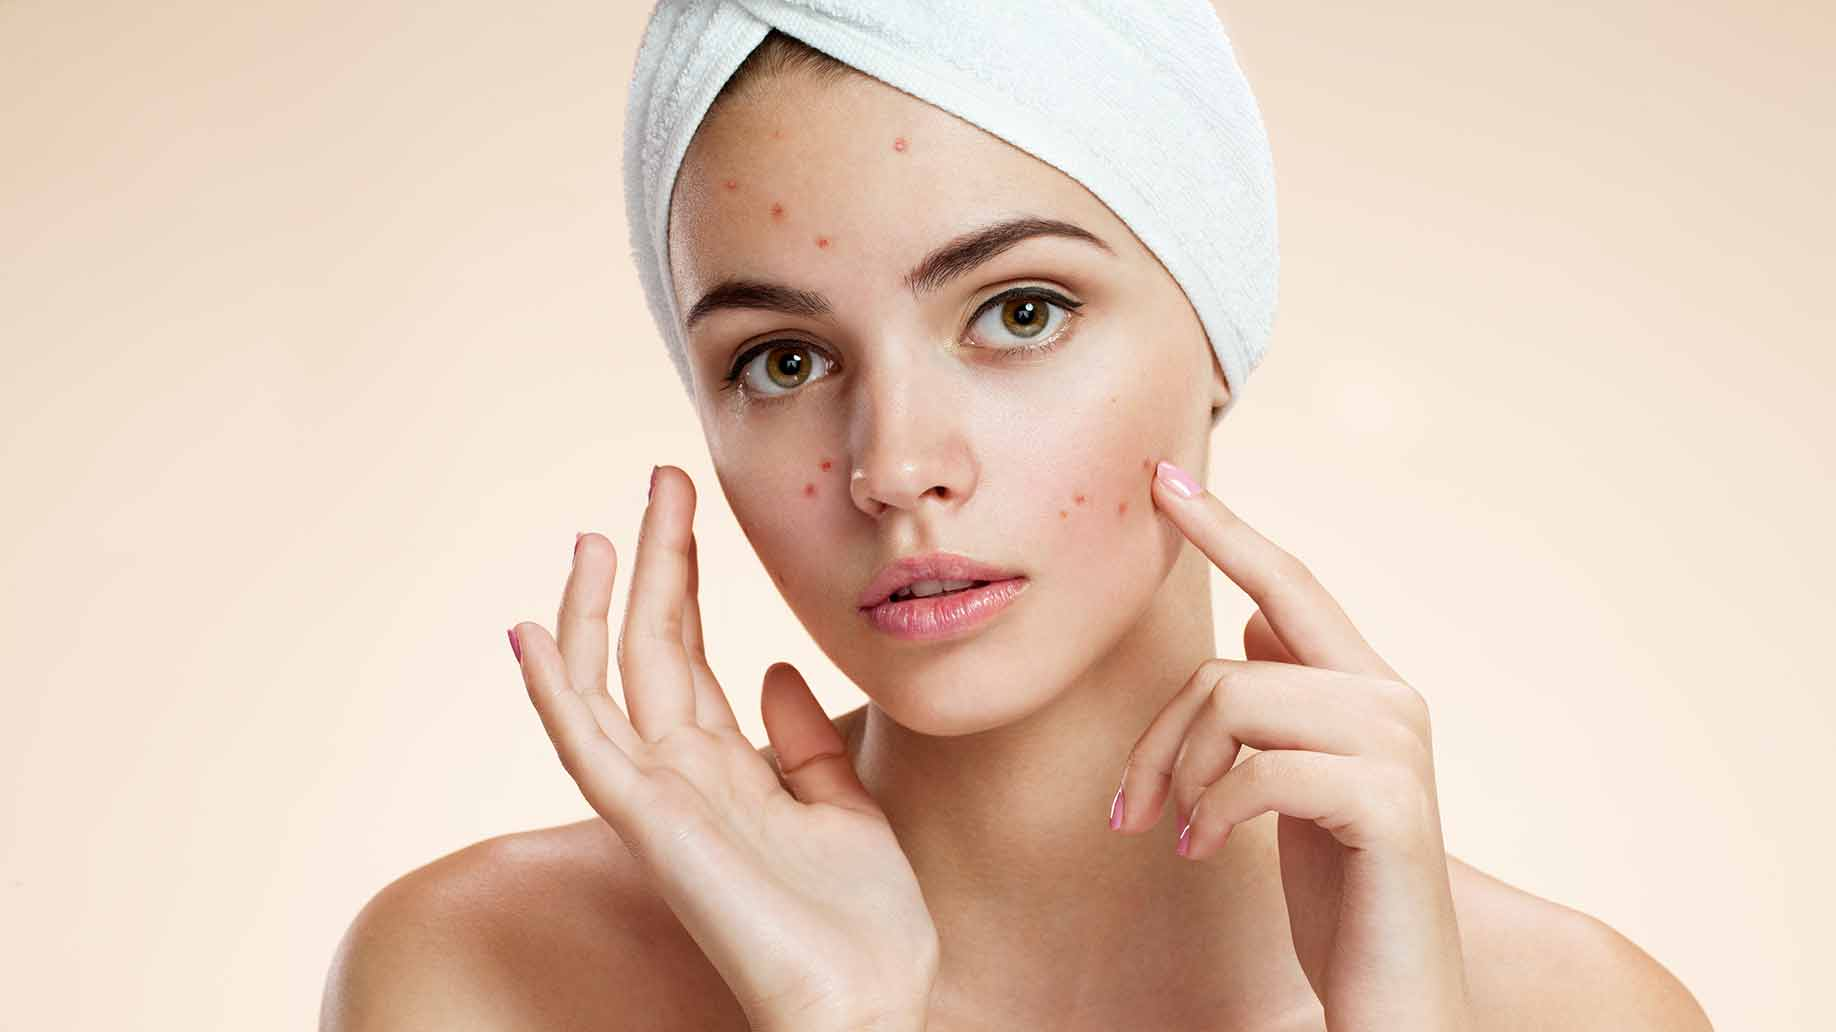 acne natural facial masks diy for problem prone skin